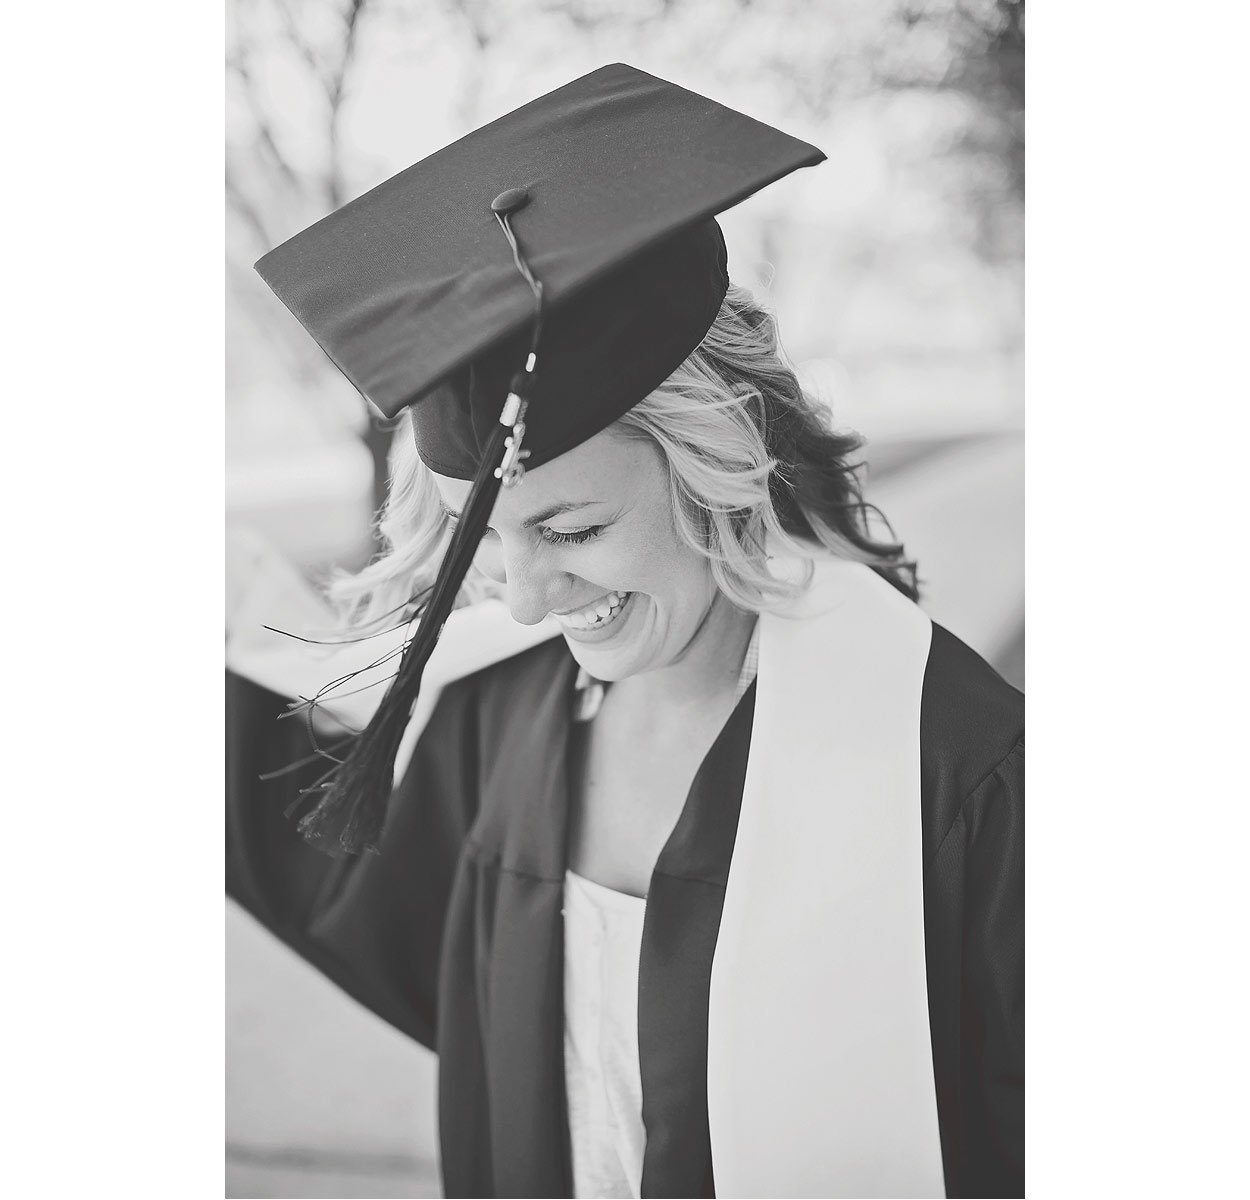 CollegeGraduationPortraits-HeidiRandallStudios-Courtney-8.jpg